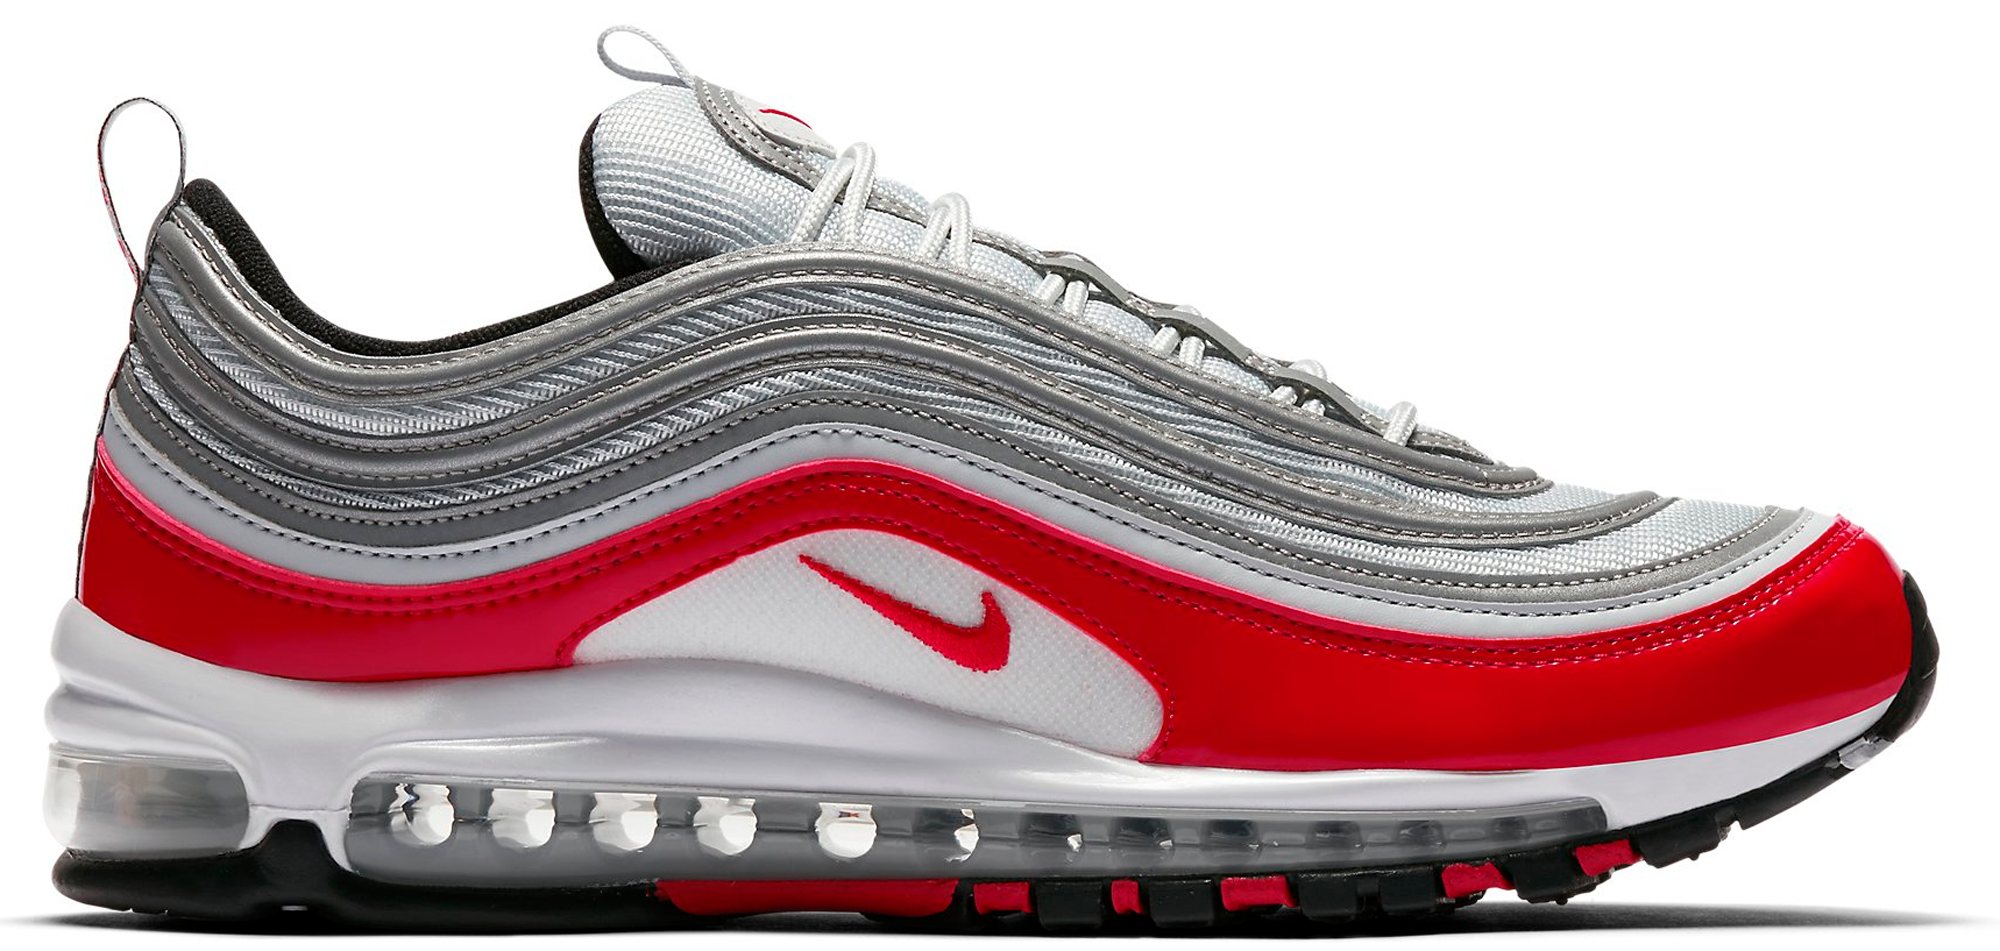 finest selection 9ded4 835c4 ... promo code for air max 97 pure platinum university red 6229c d7988  order nike ...